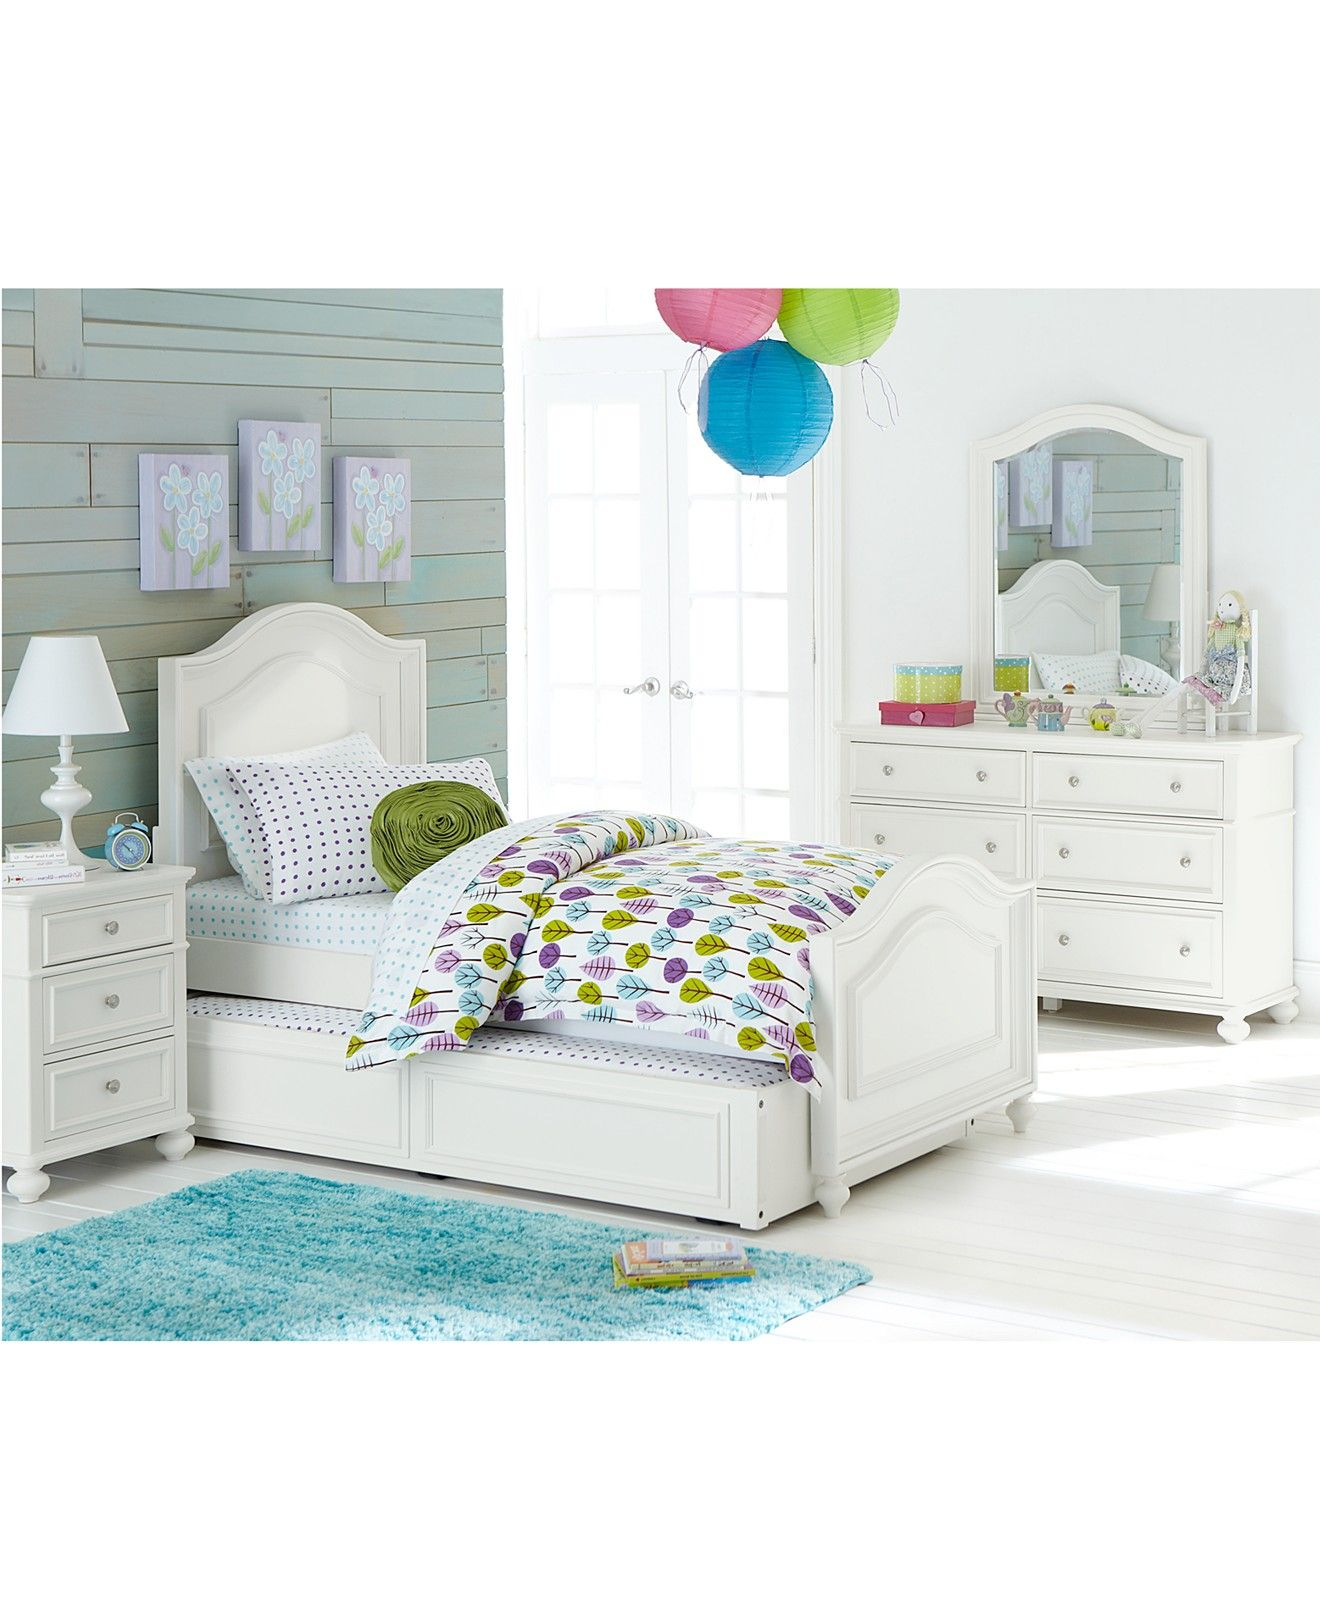 Roseville Kids Bed Full Bed Home E S Room Twin Bed Furniture